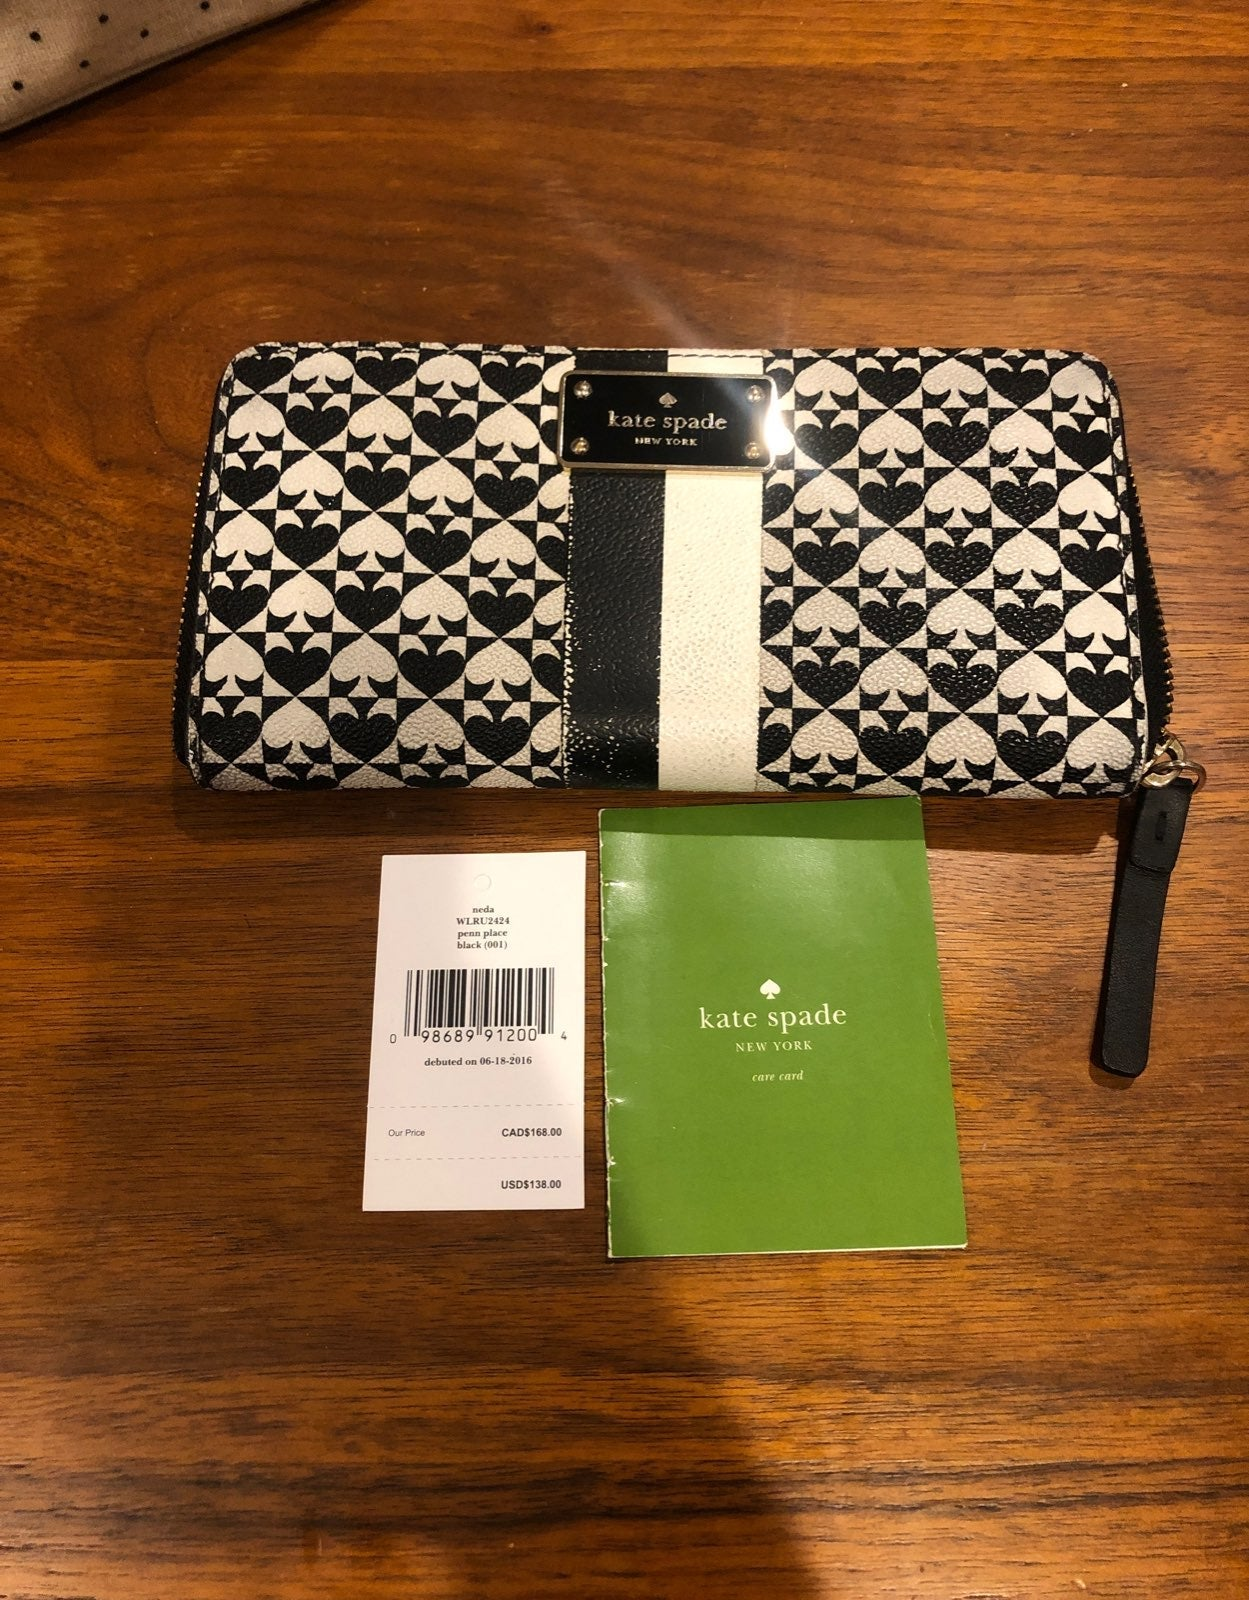 Kate Spade Wallet and free Makeup Case